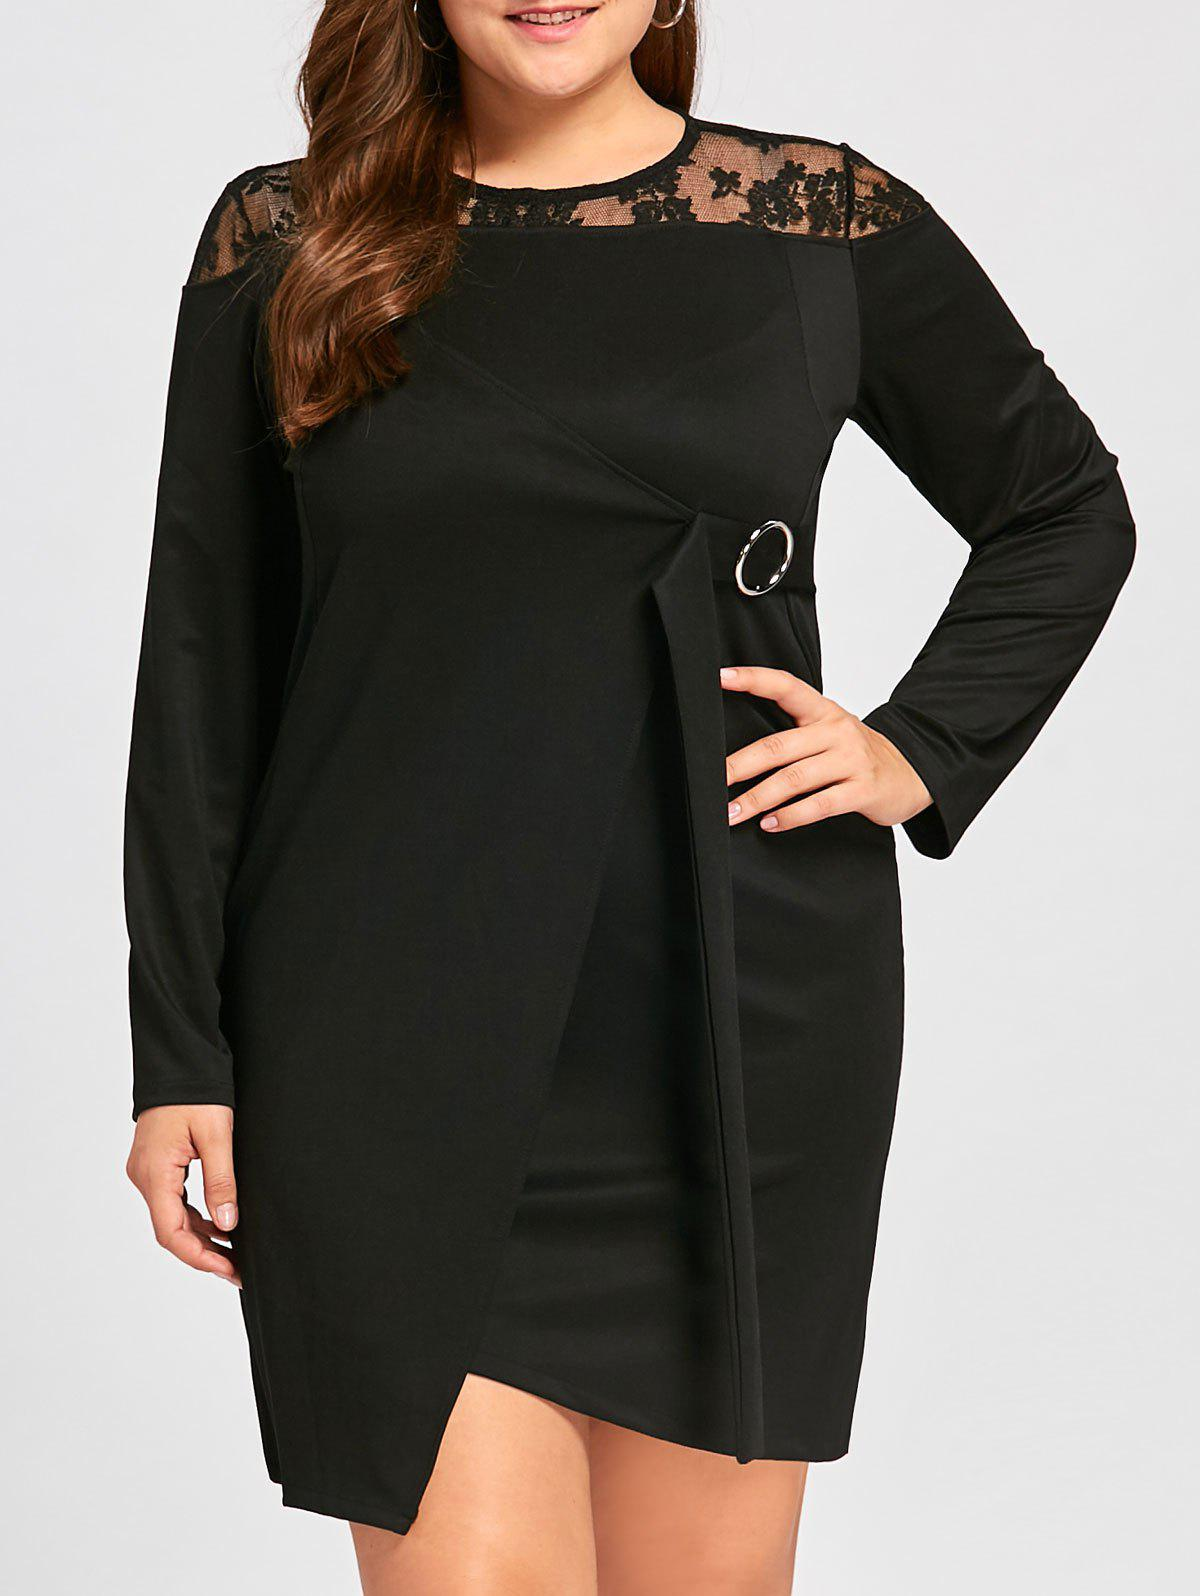 Plus Size Lace Insert Long Sleeve Asymmetric Dress - BLACK 5XL